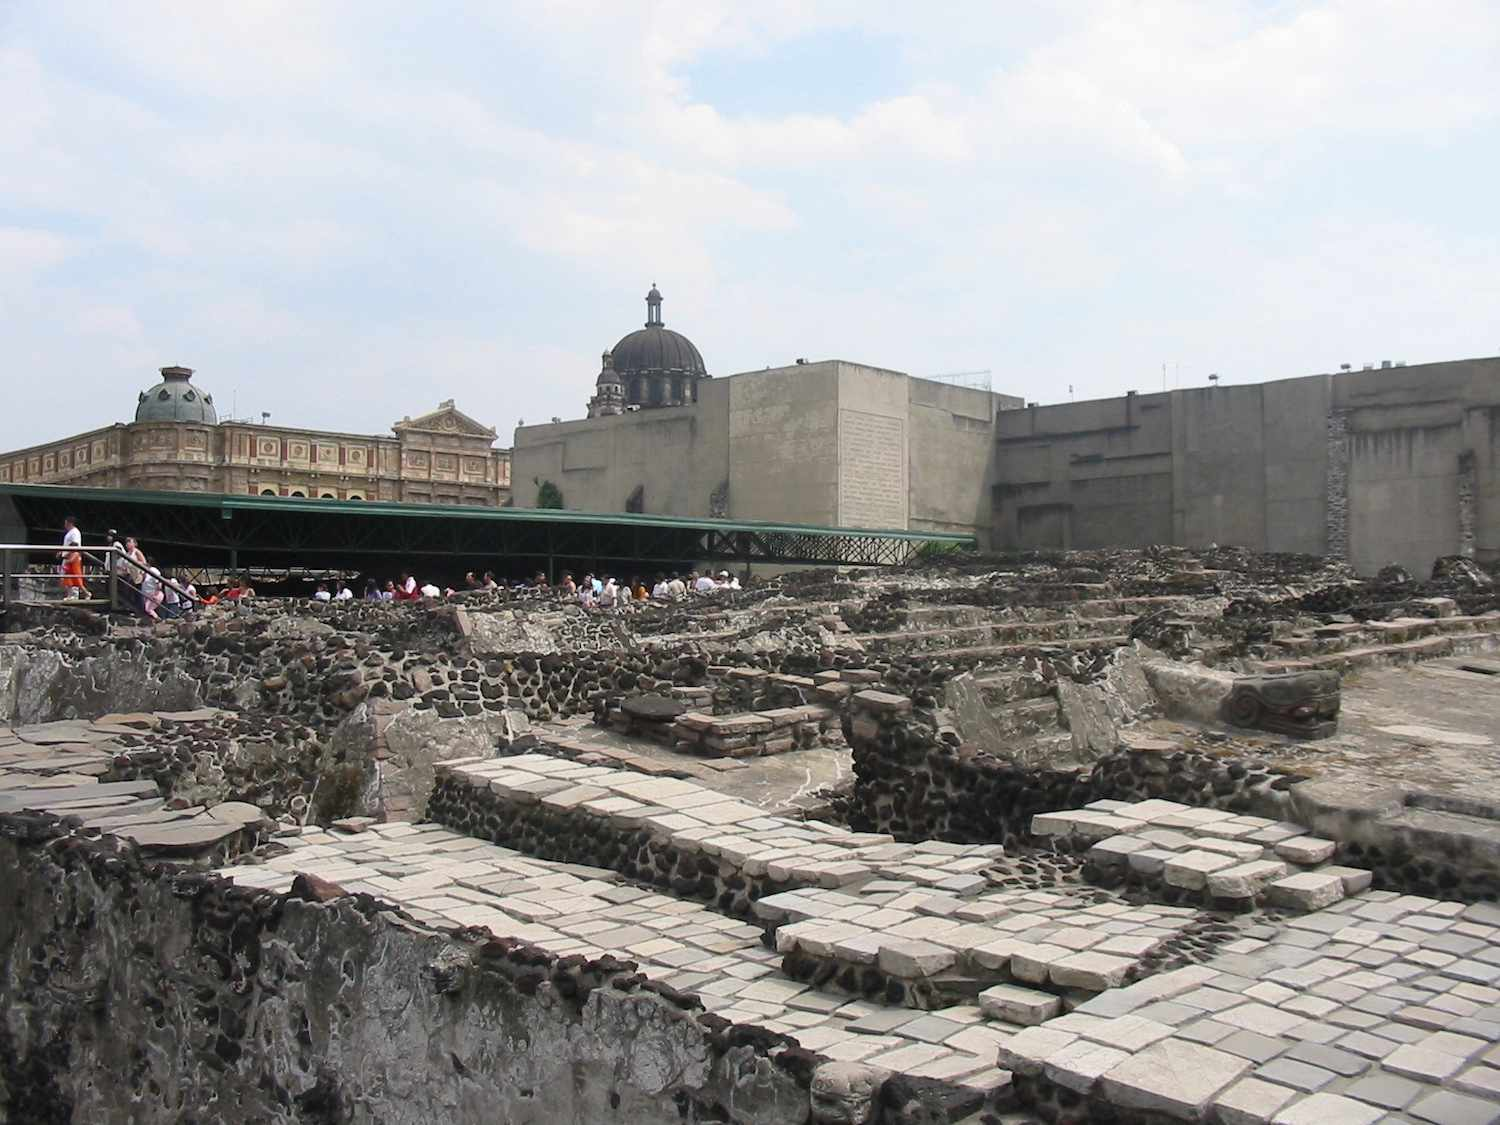 The ruins of Templo Mayer in Mexico City